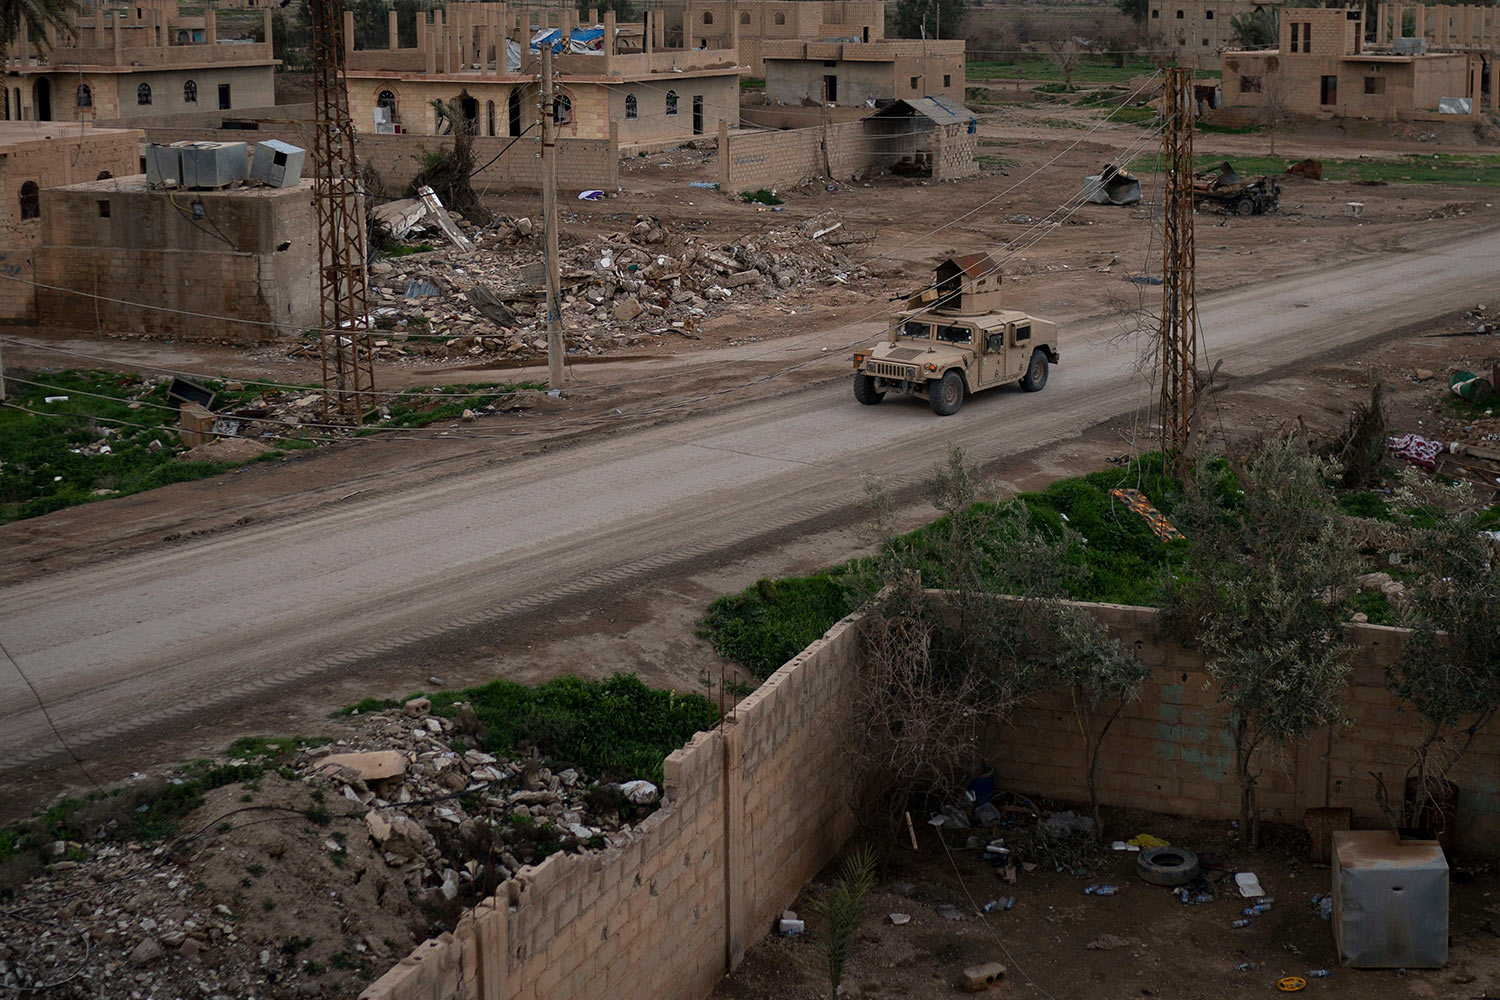 A Humvee drives in a village recently retaken from Islamic State militants by U.S.-backed Syrian Democratic Forces (SDF) near Baghouz, Syria, Sunday, Feb. 17, 2019. Islamic State militants are preventing more than 1,000 civilians from leaving a tiny area still held by the extremist group in a village in eastern Syria, a spokesman for the U.S.-backed Syrian militia fighting the group said Sunday. (AP Photo/Felipe Dana)